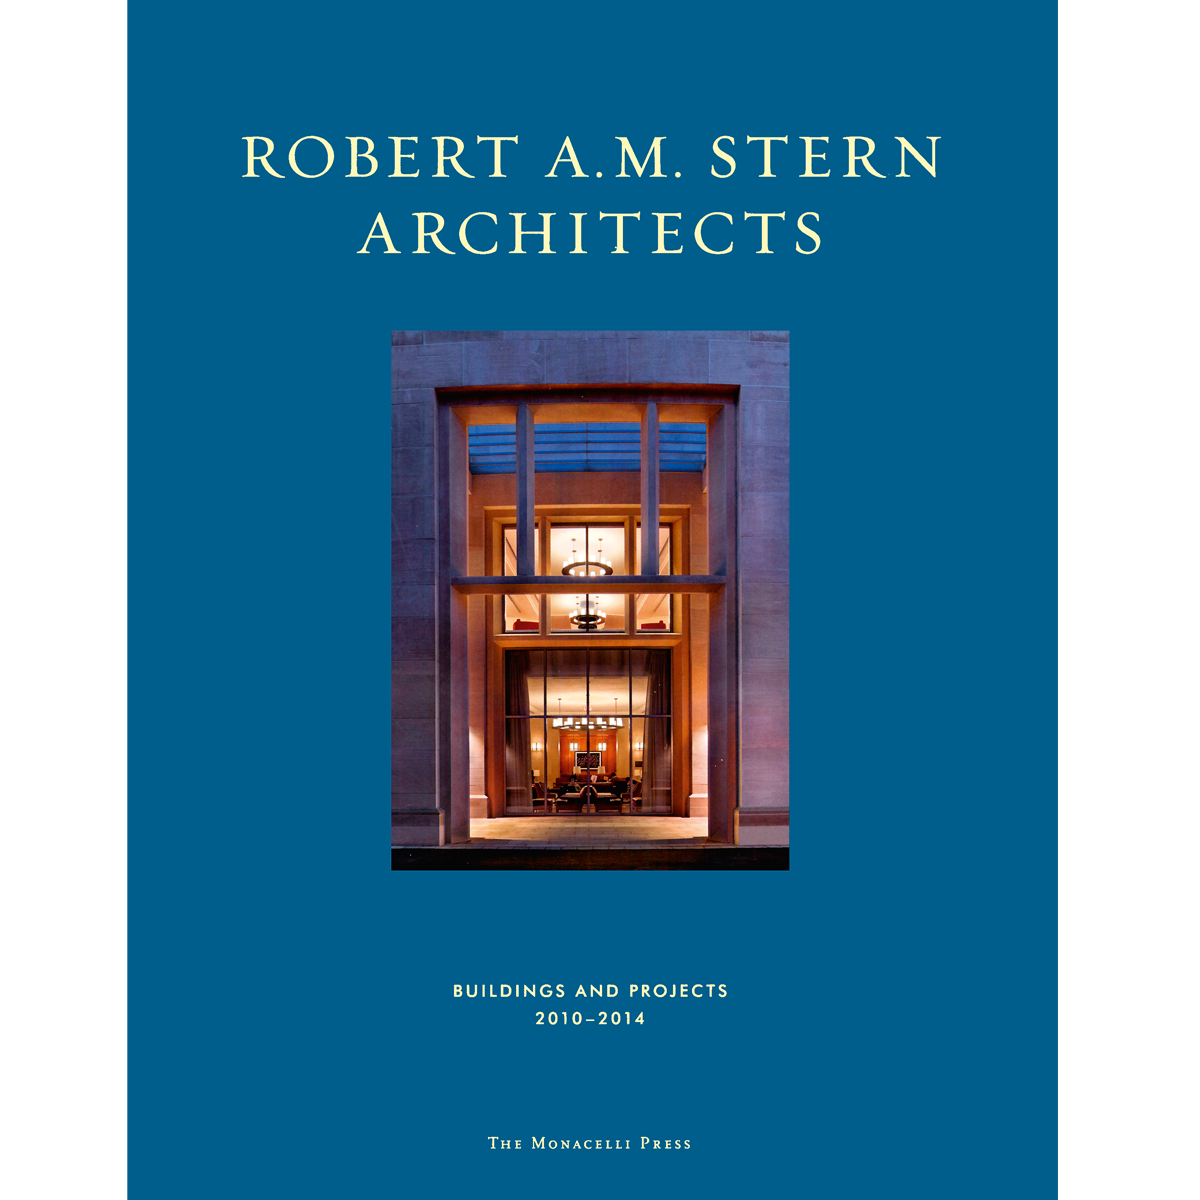 Robert A. M. Stern Architects